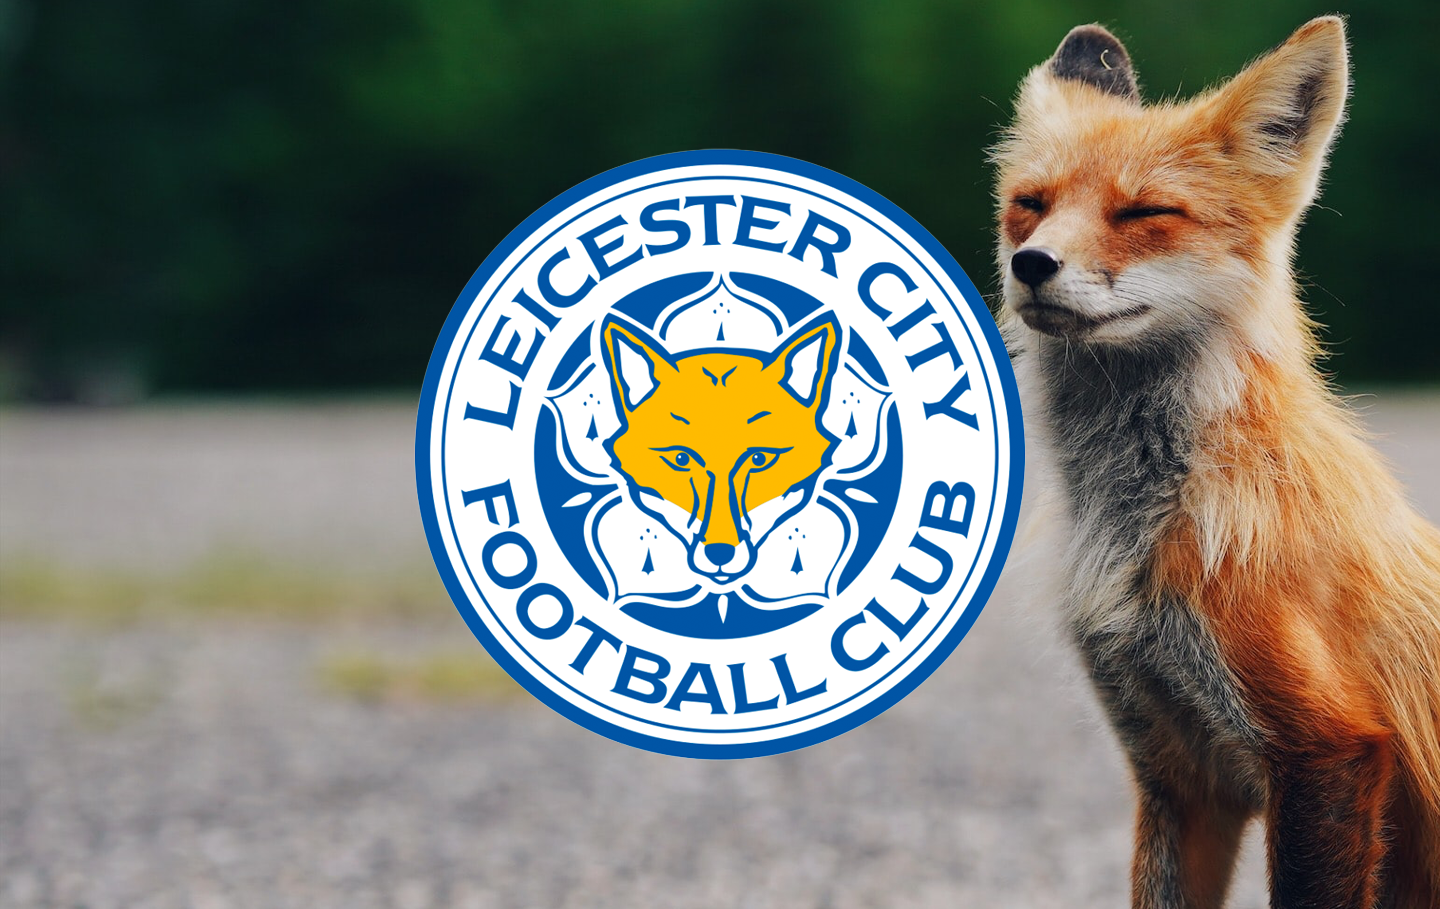 Badge of the Week: Leicester City F.C.